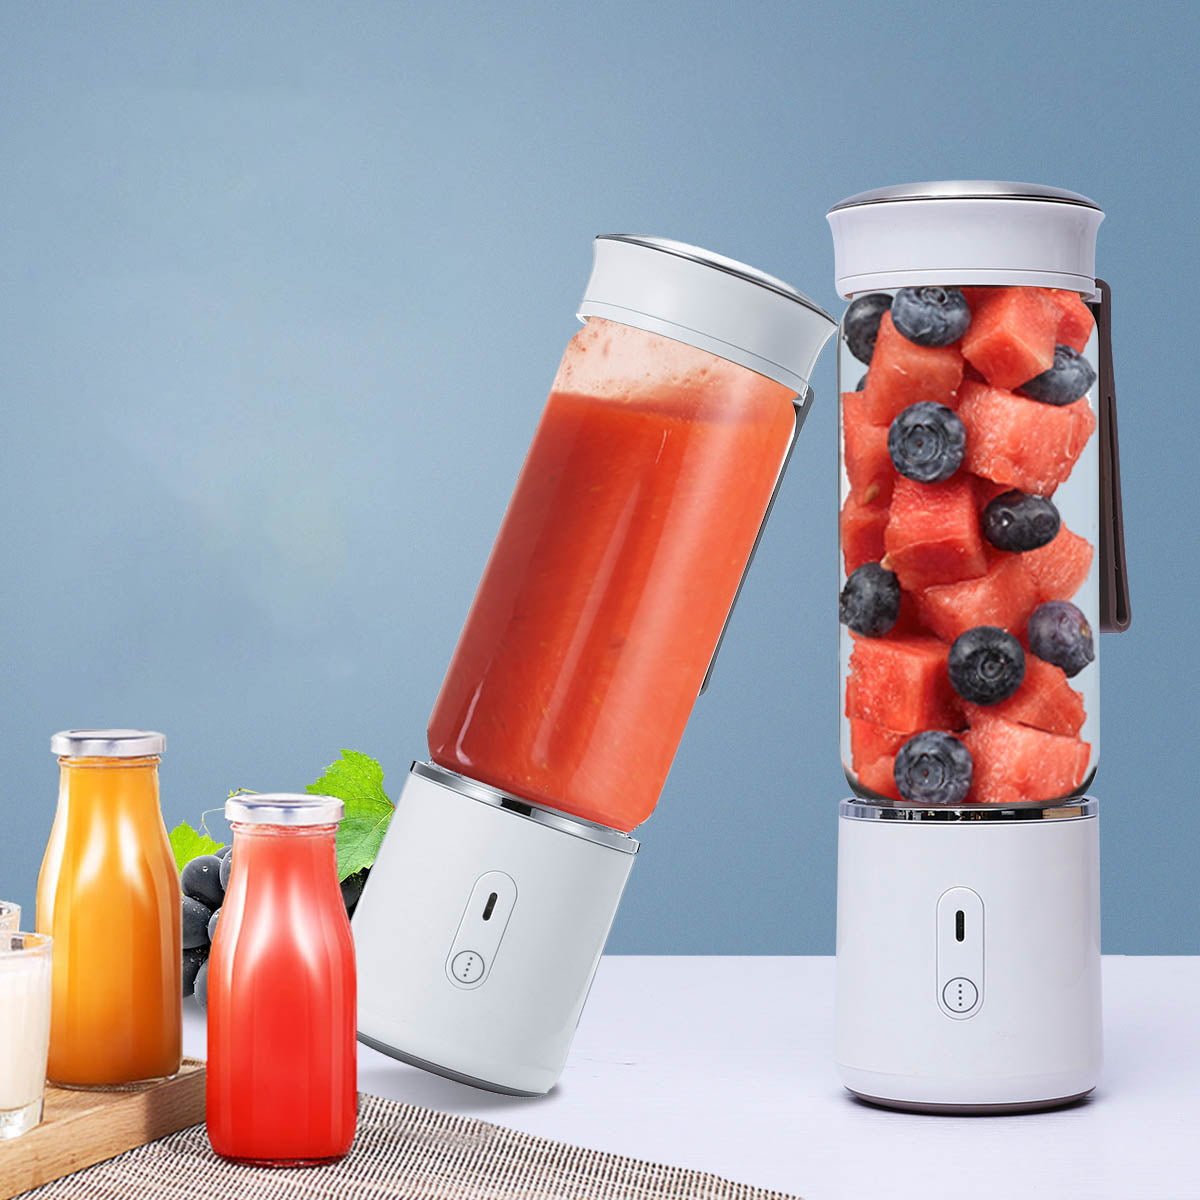 AUGIENB 500ML Electric Glass Juicer Cup Fruit Extractor Machines Personal Portable Blender Maker Shakes Ice Blender Mixer Juicer 6 Blade USB Rechargeable 20s Fast Stirring Camping Travel